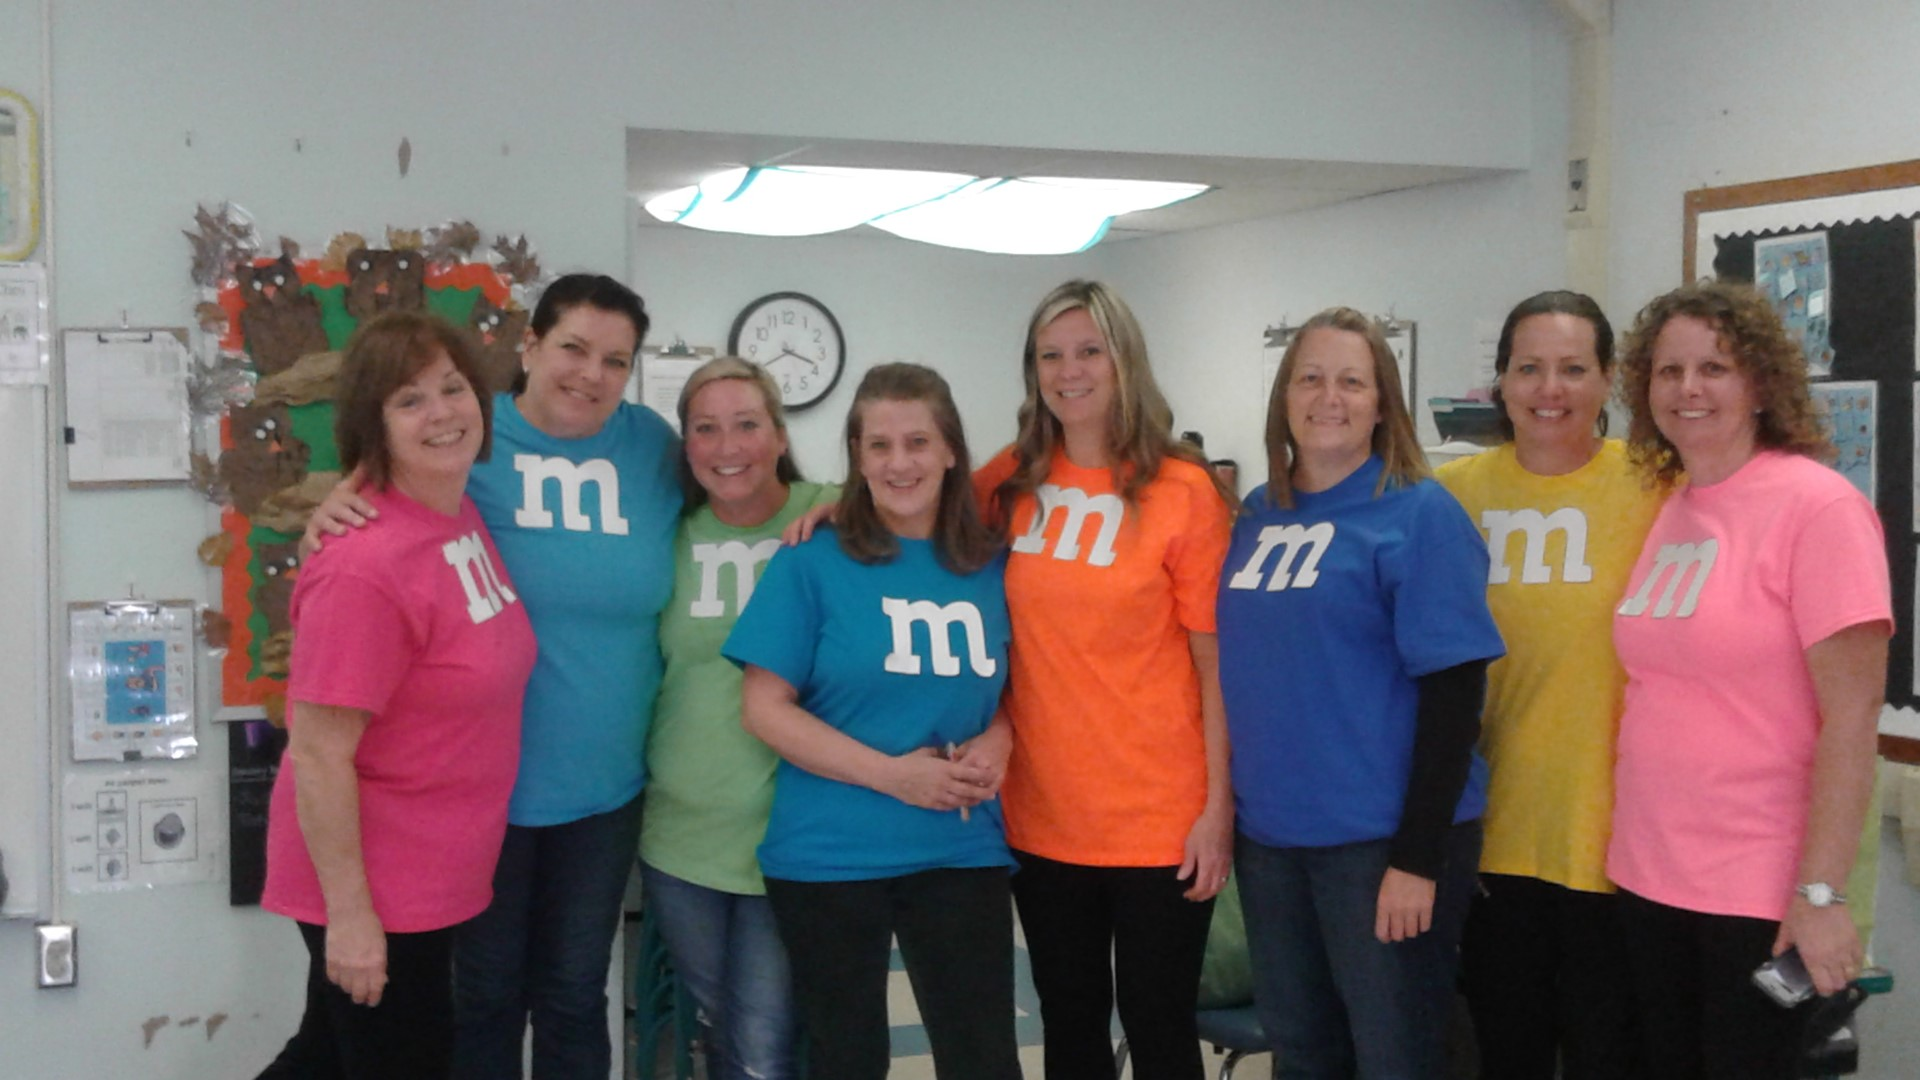 The M & M gang